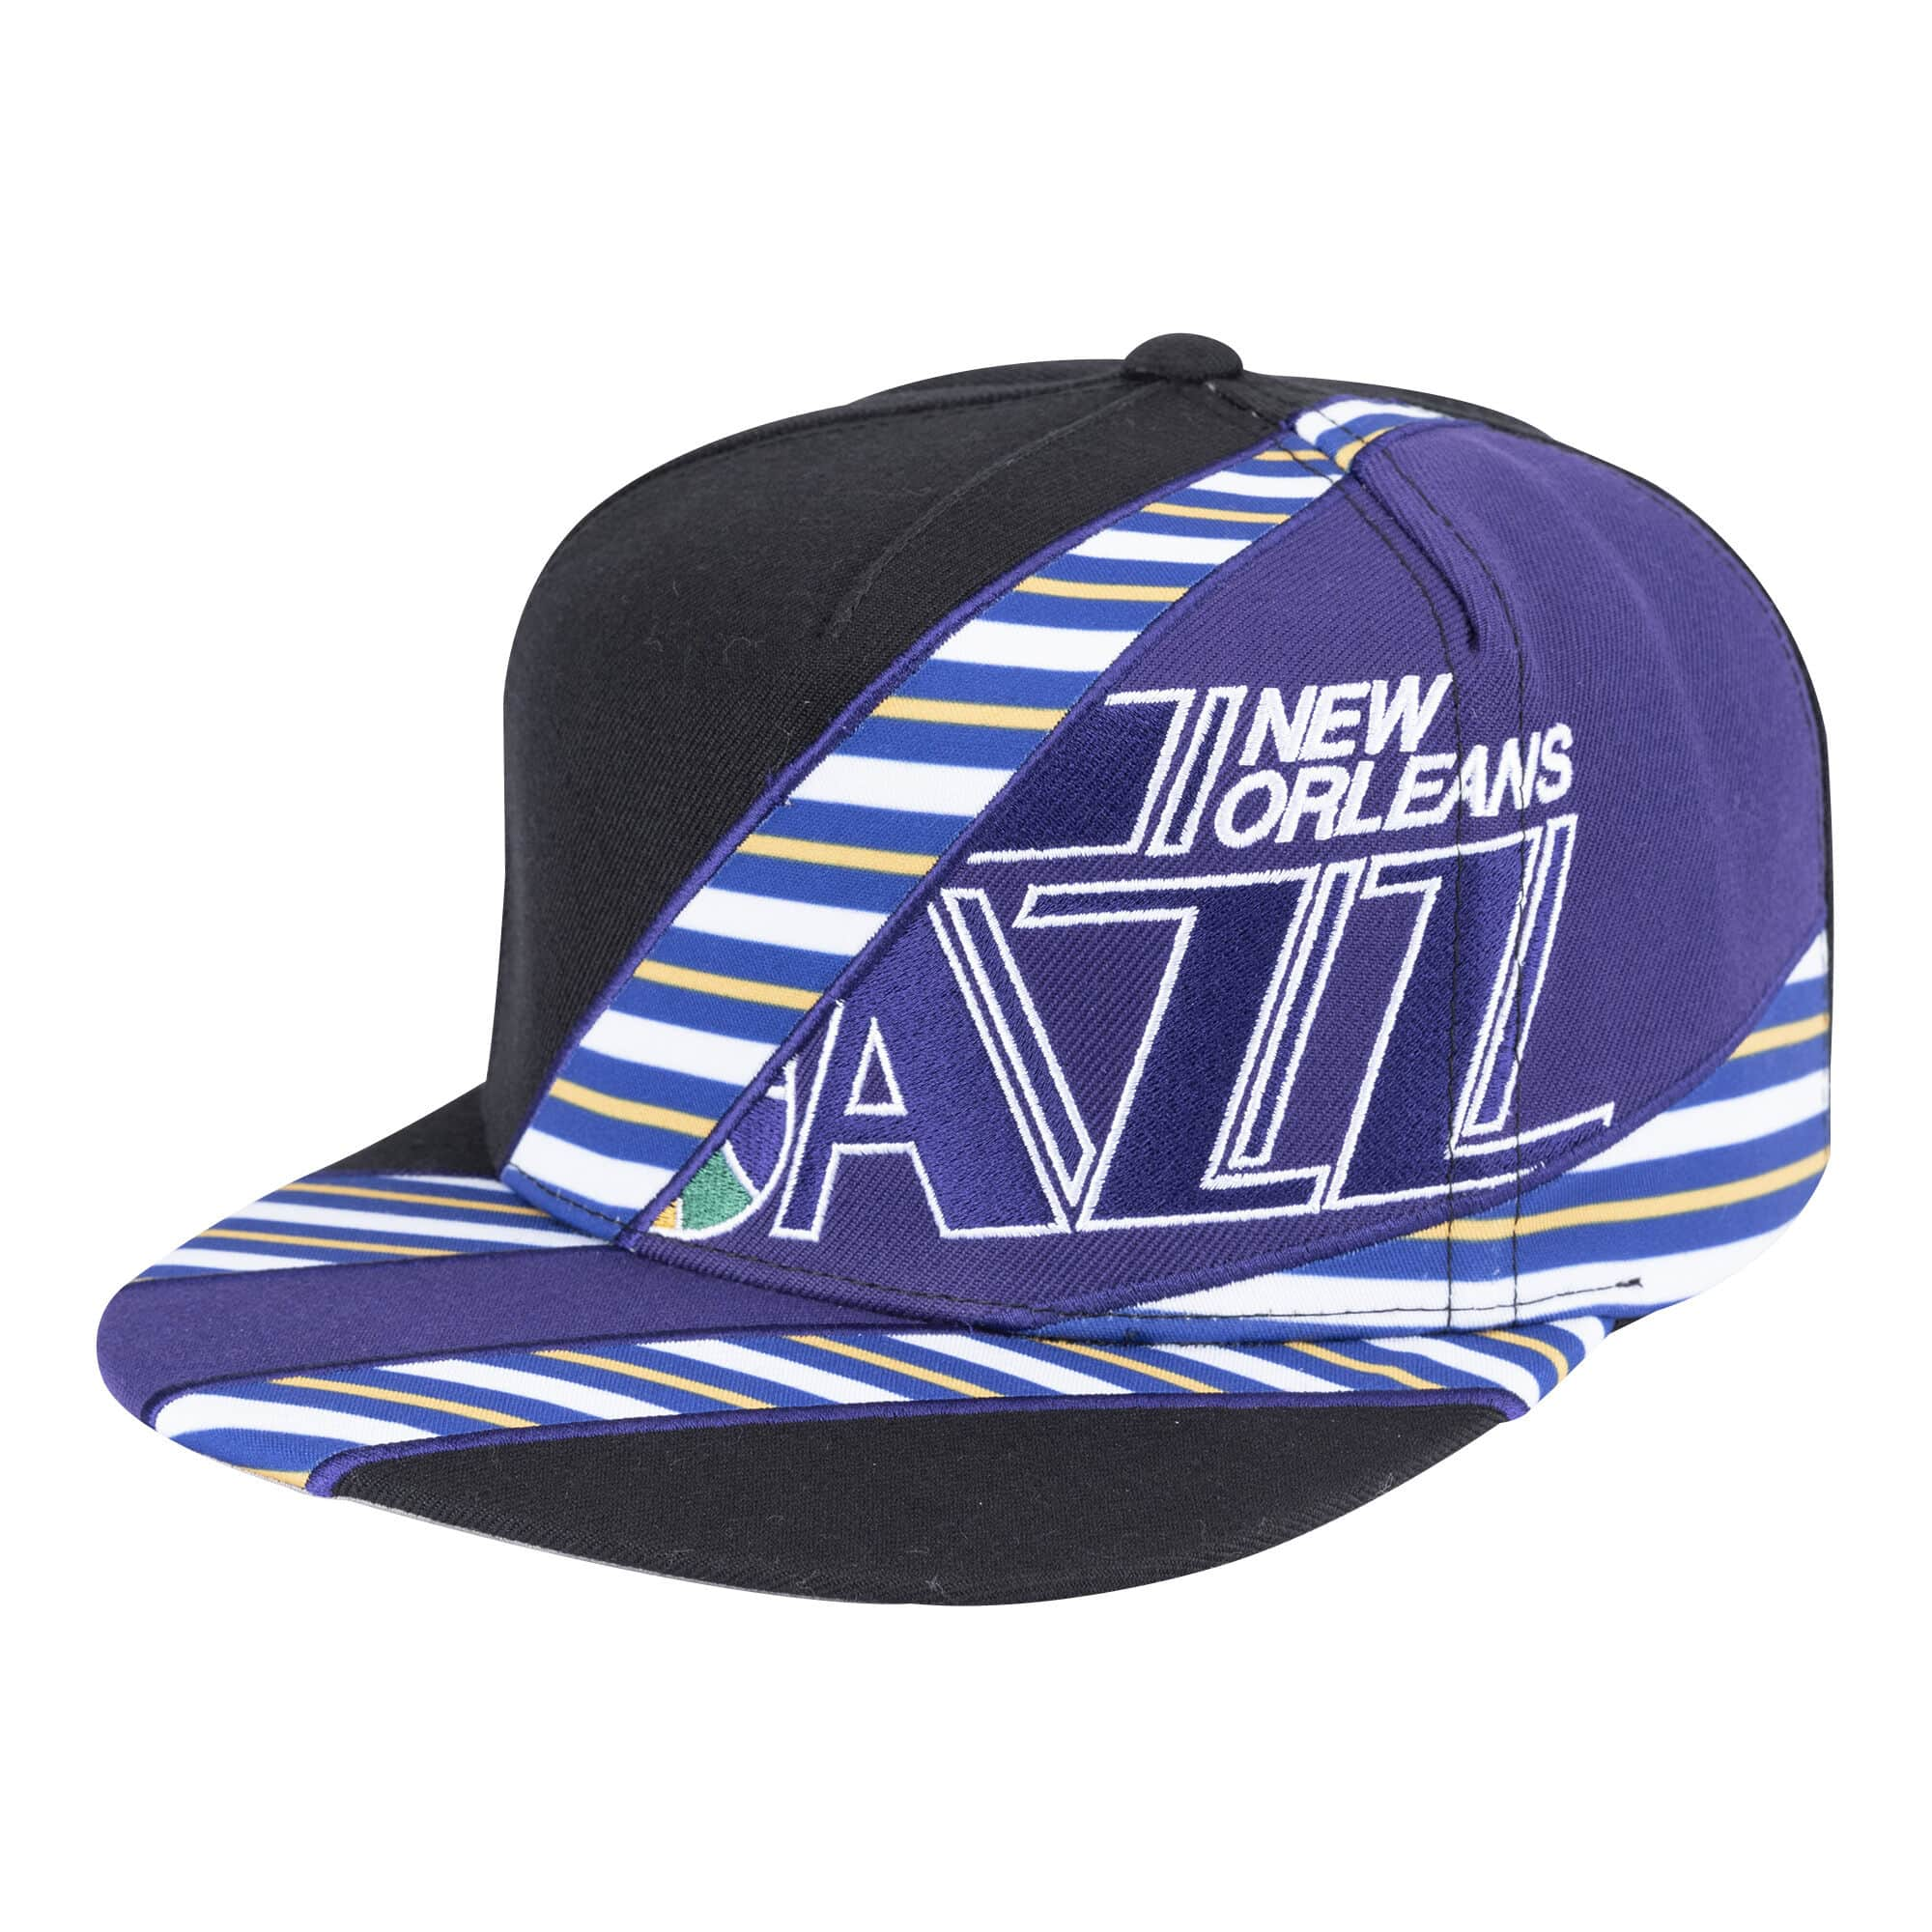 Team DNA Inset Snapback New Orleans Jazz